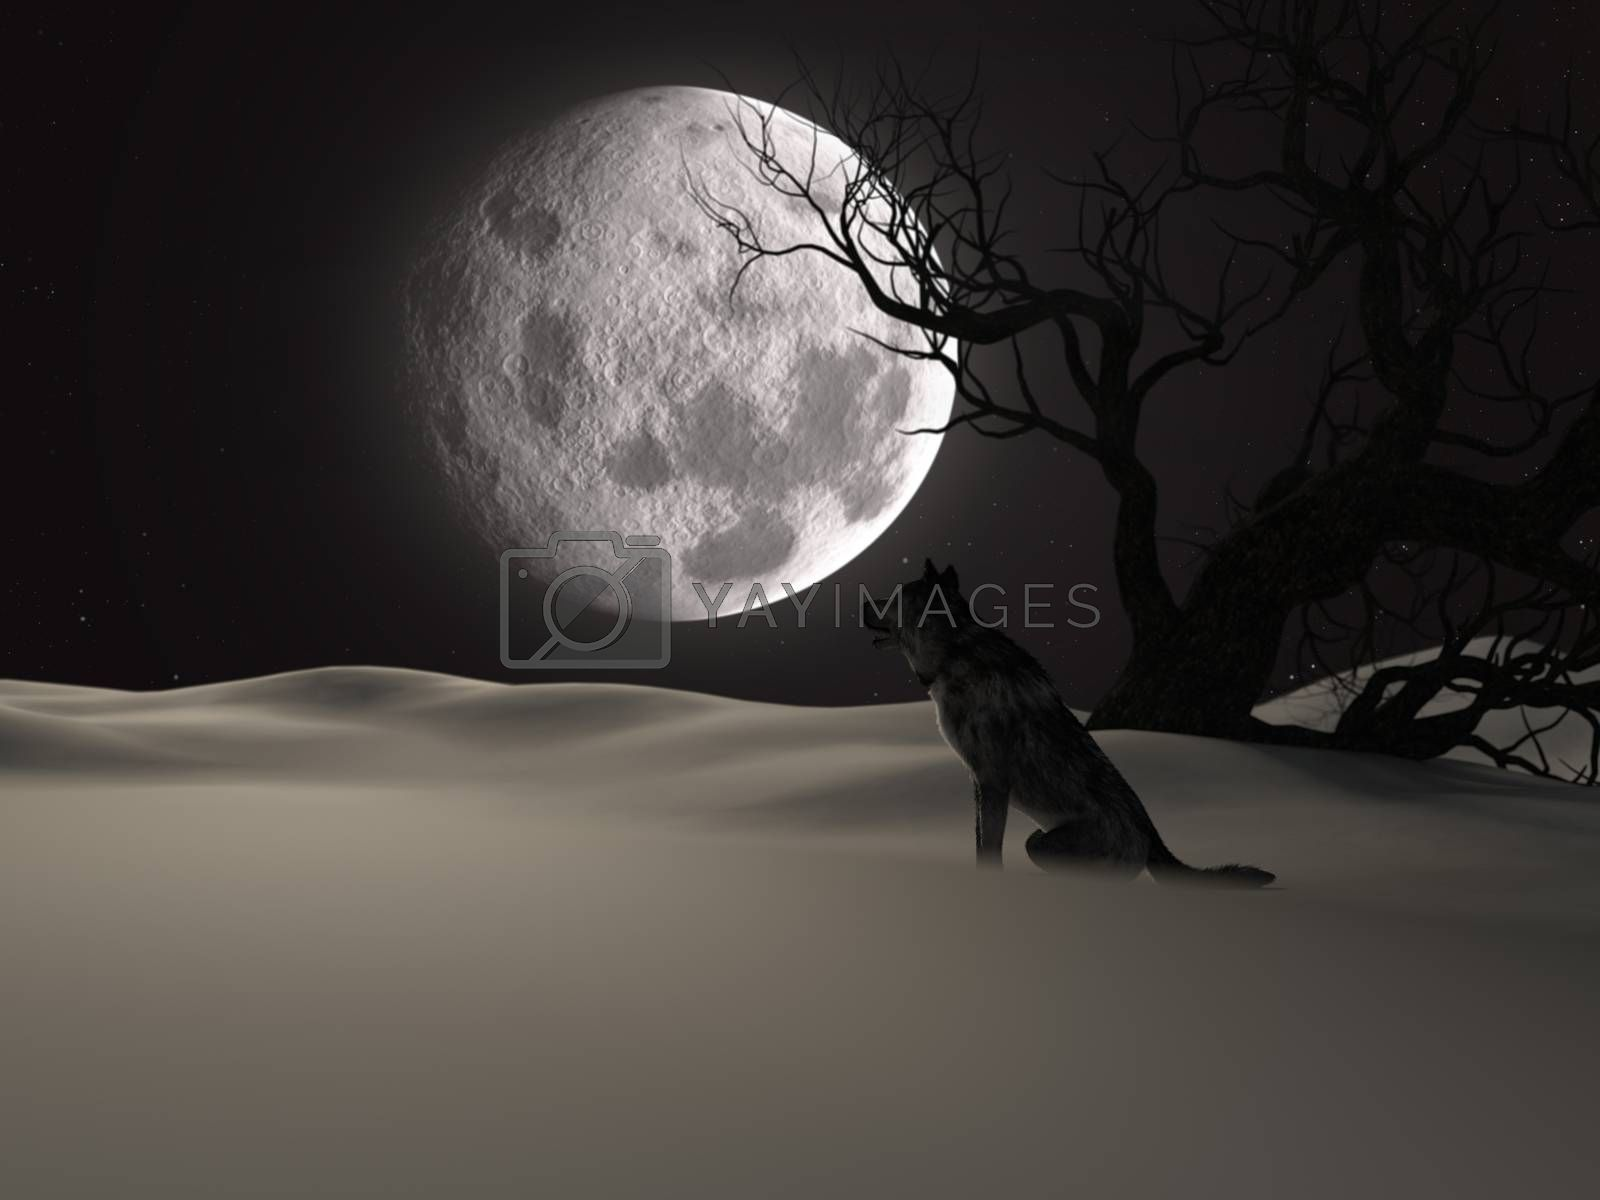 Illustration of a wolf during the full moon in winter with a creepy tree - 3d rendering